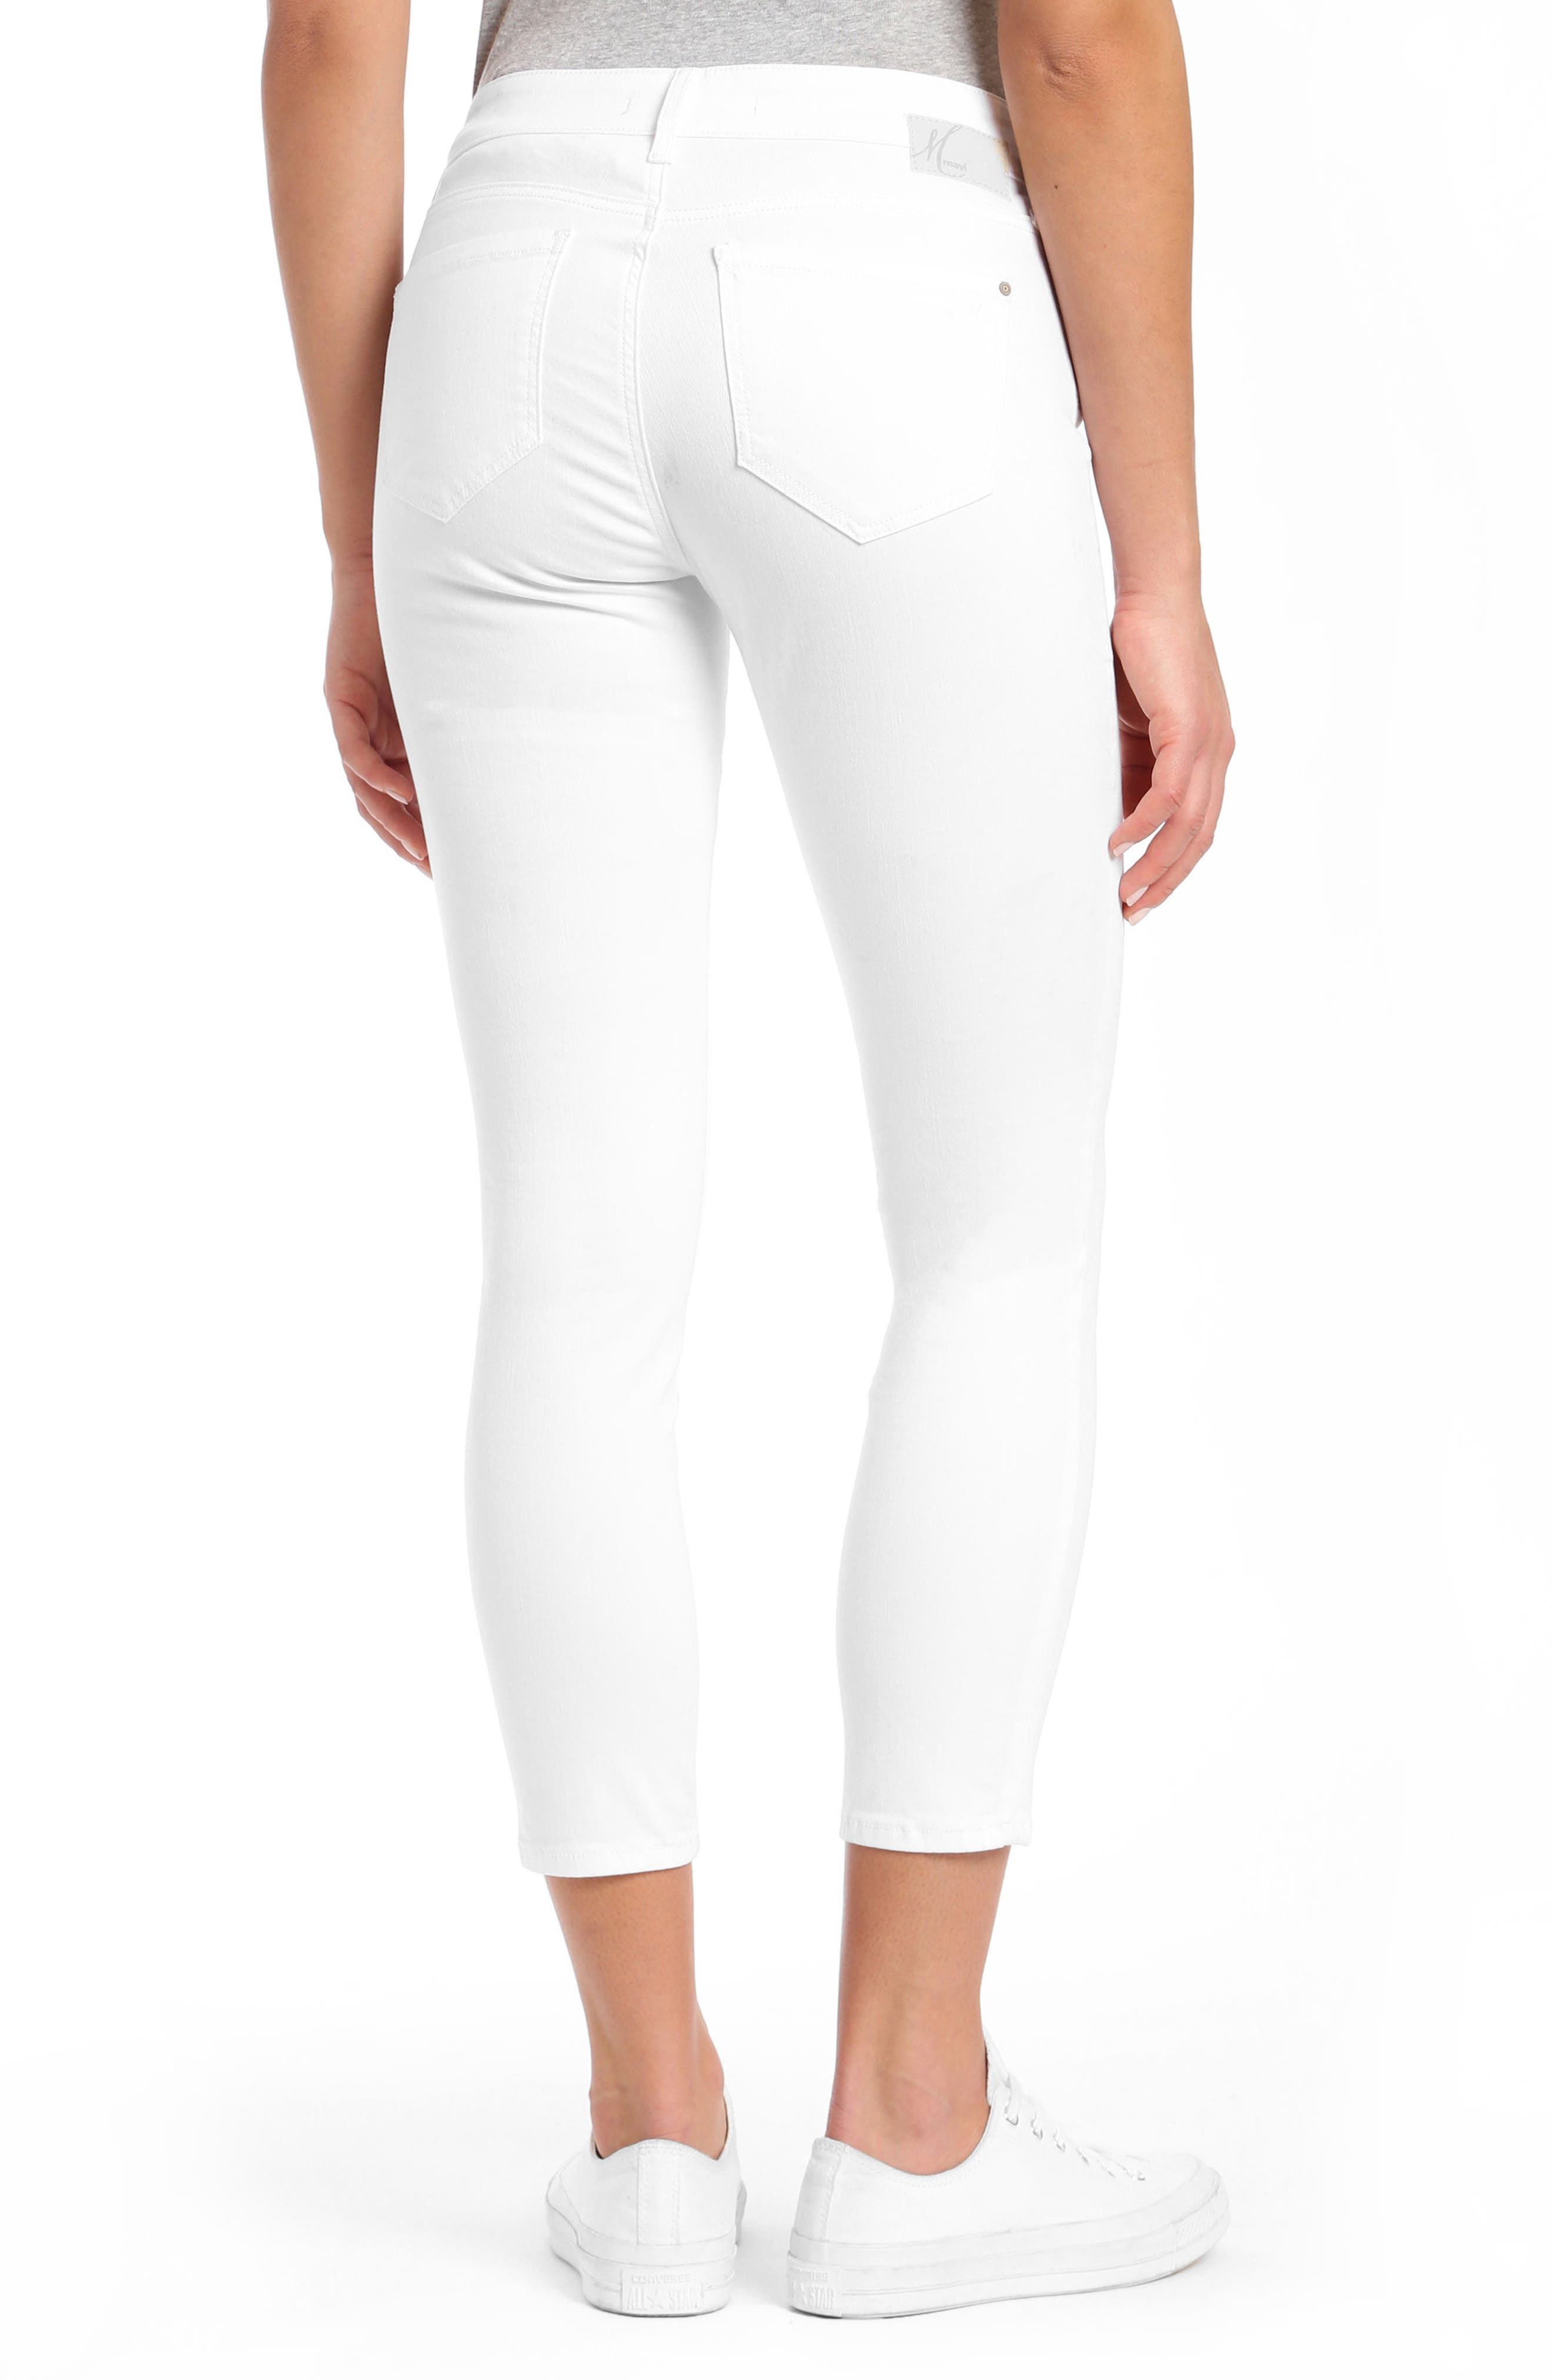 Adriana Ankle Jeans,                             Alternate thumbnail 2, color,                             White Tribeca